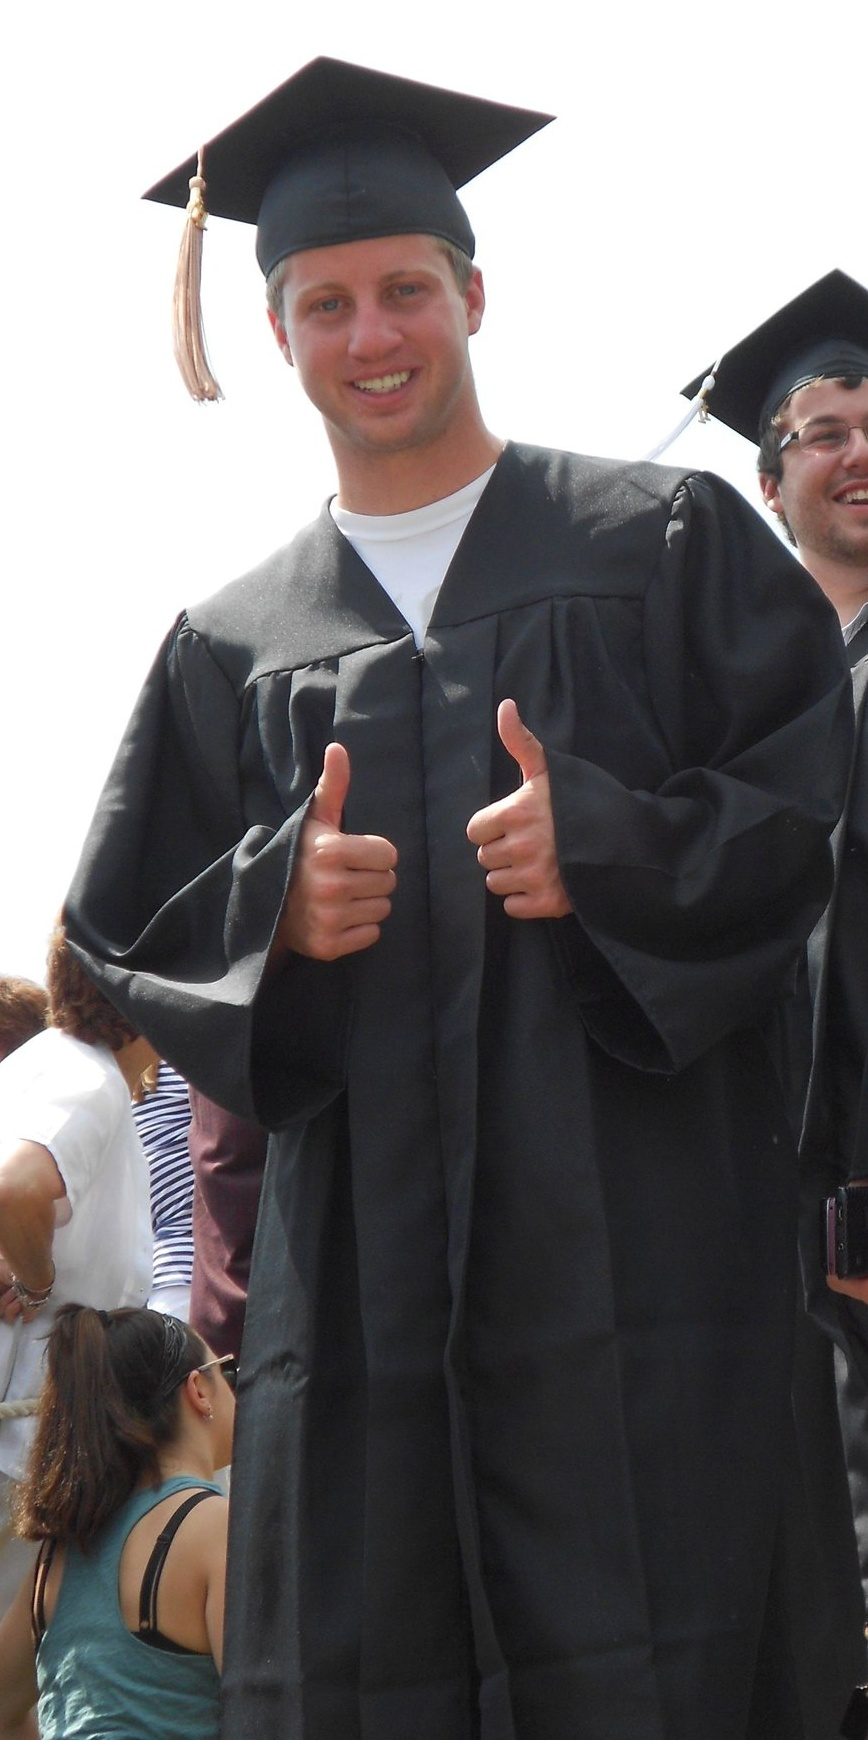 Brightergy employee Sam Field pictured on graduation day.